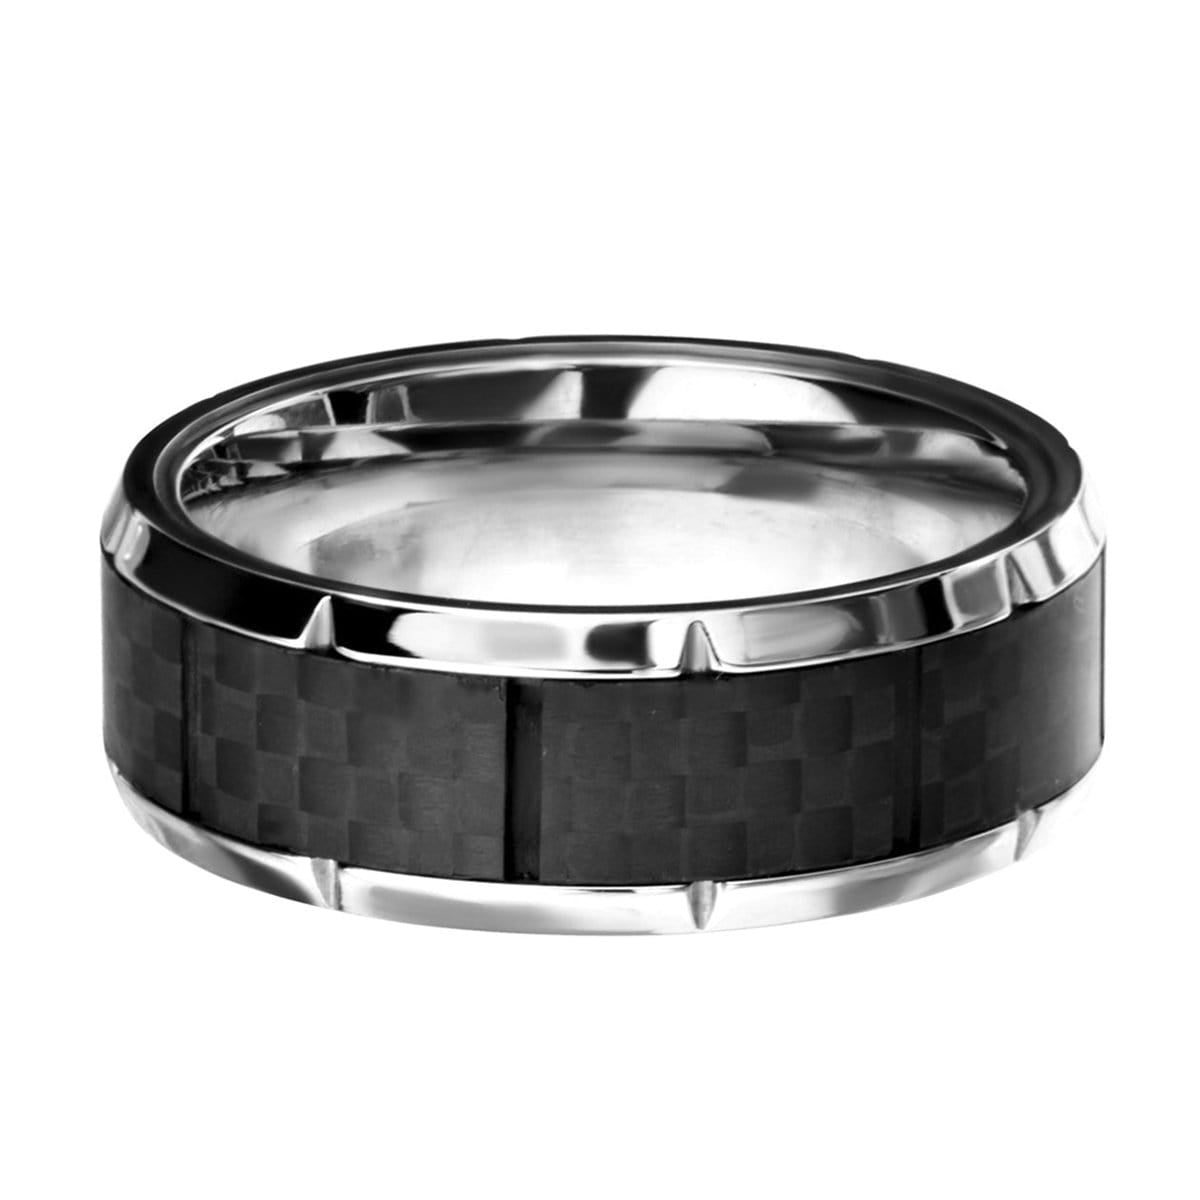 Silver Stainless Steel Ridged Edge with Center Solid Carbon Fiber Band Rings